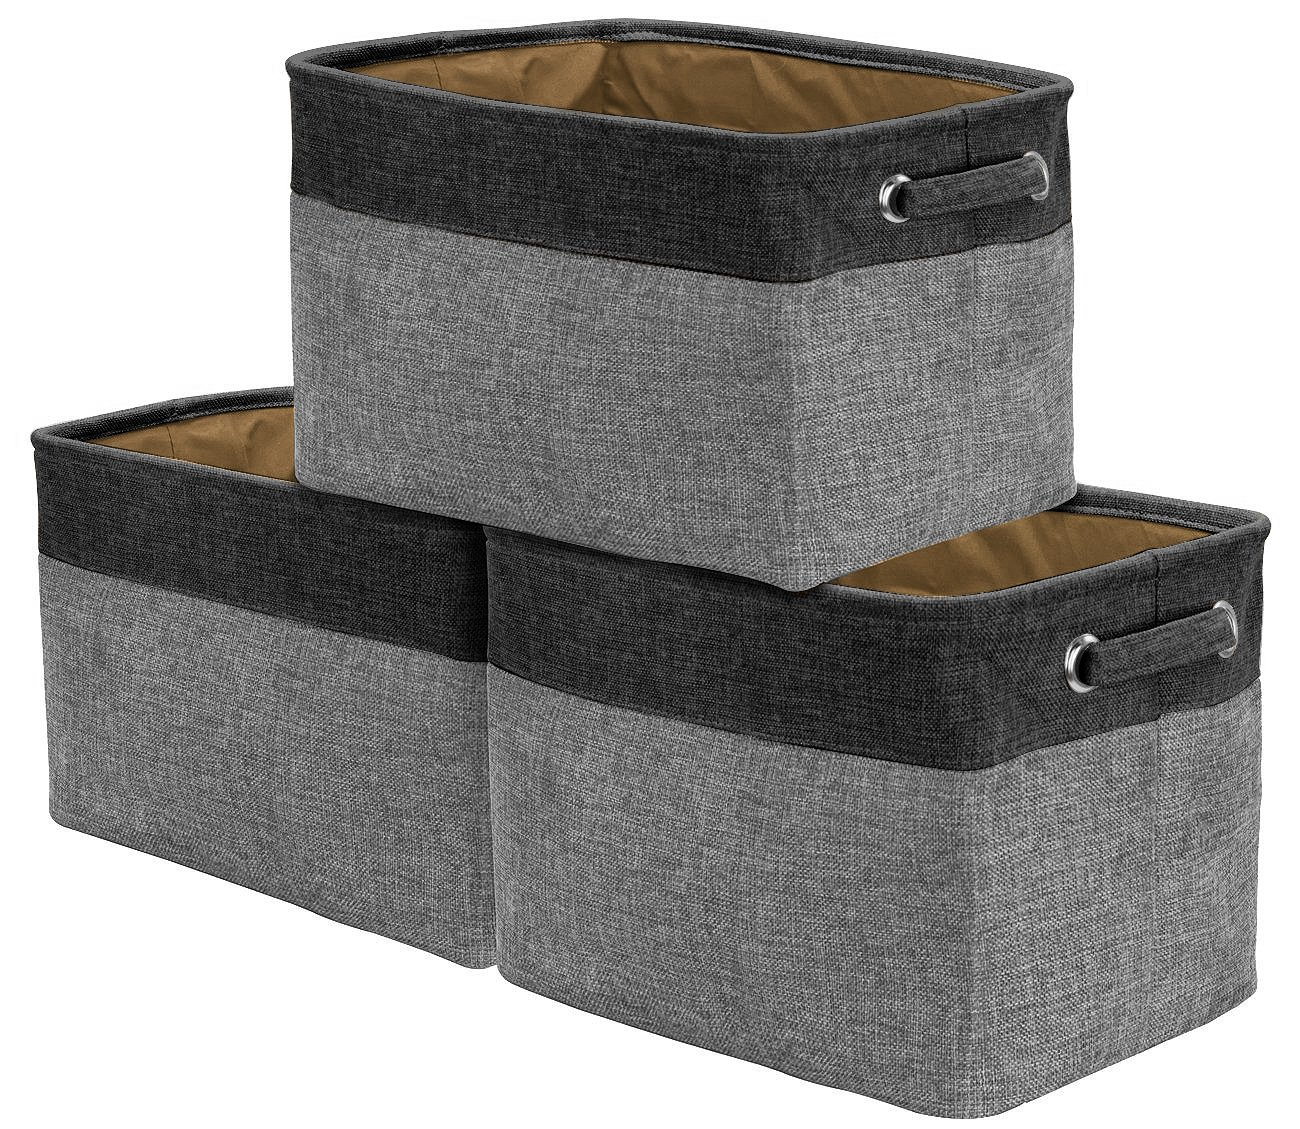 Sorbus Storage Large Basket Set [3-Pack] - 15 L x 10 W x 9 H - Big Rectangular Fabric Collapsible Organizer Bin with Carry Handles for Linens, Towels, Toys, Clothes, Kids Room, Nursery (Black/Grey)